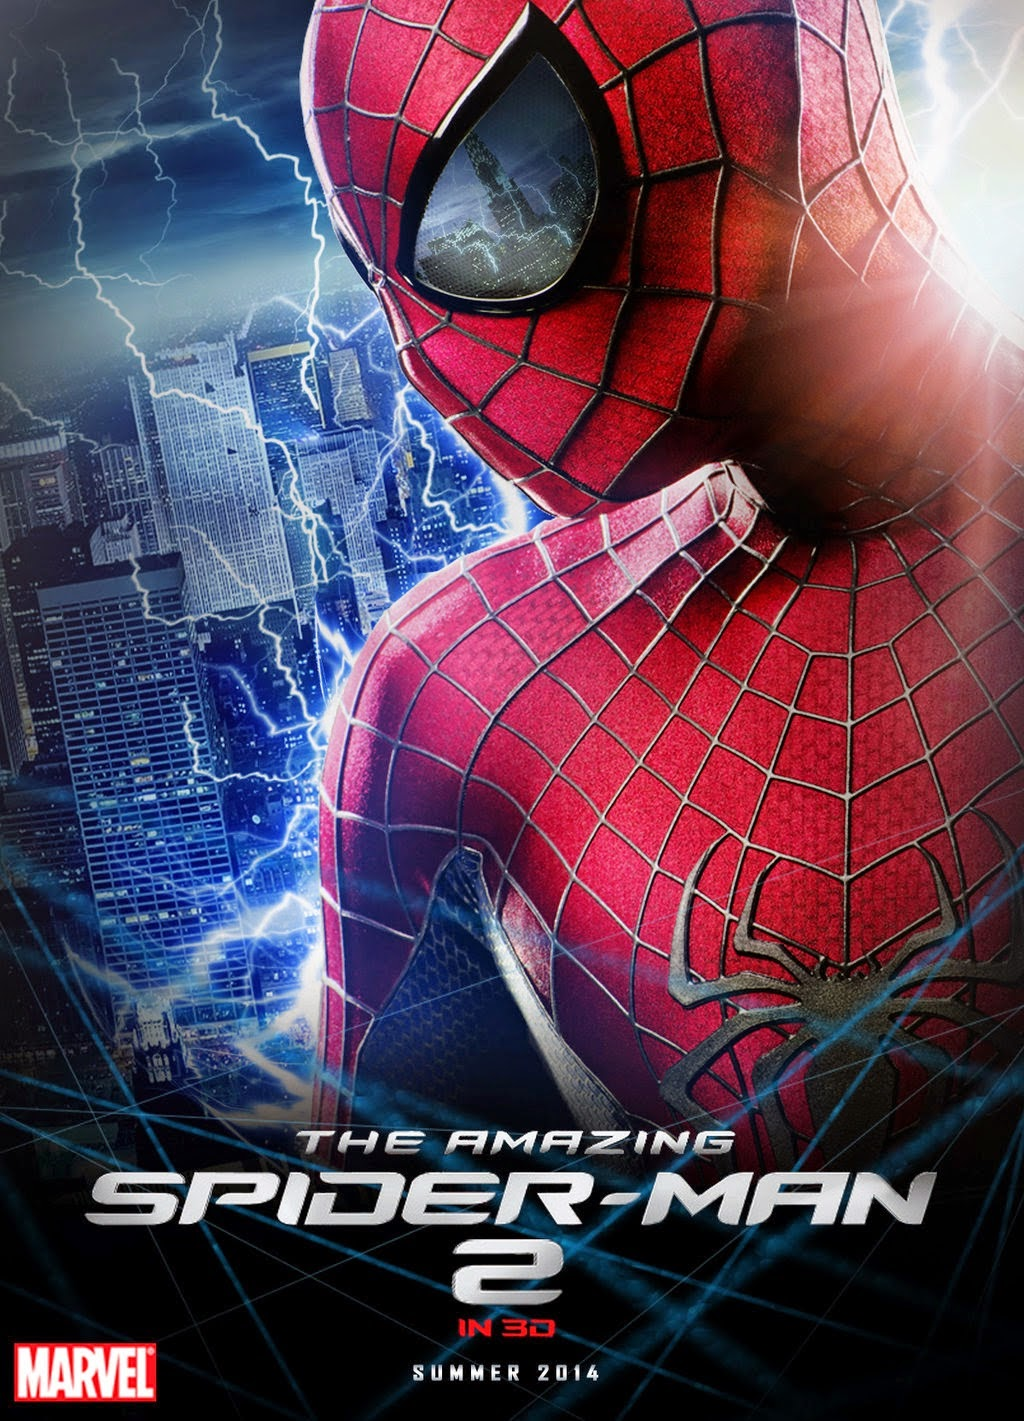 The Amazing Spider-Man 2 [2014] BluRay 720p